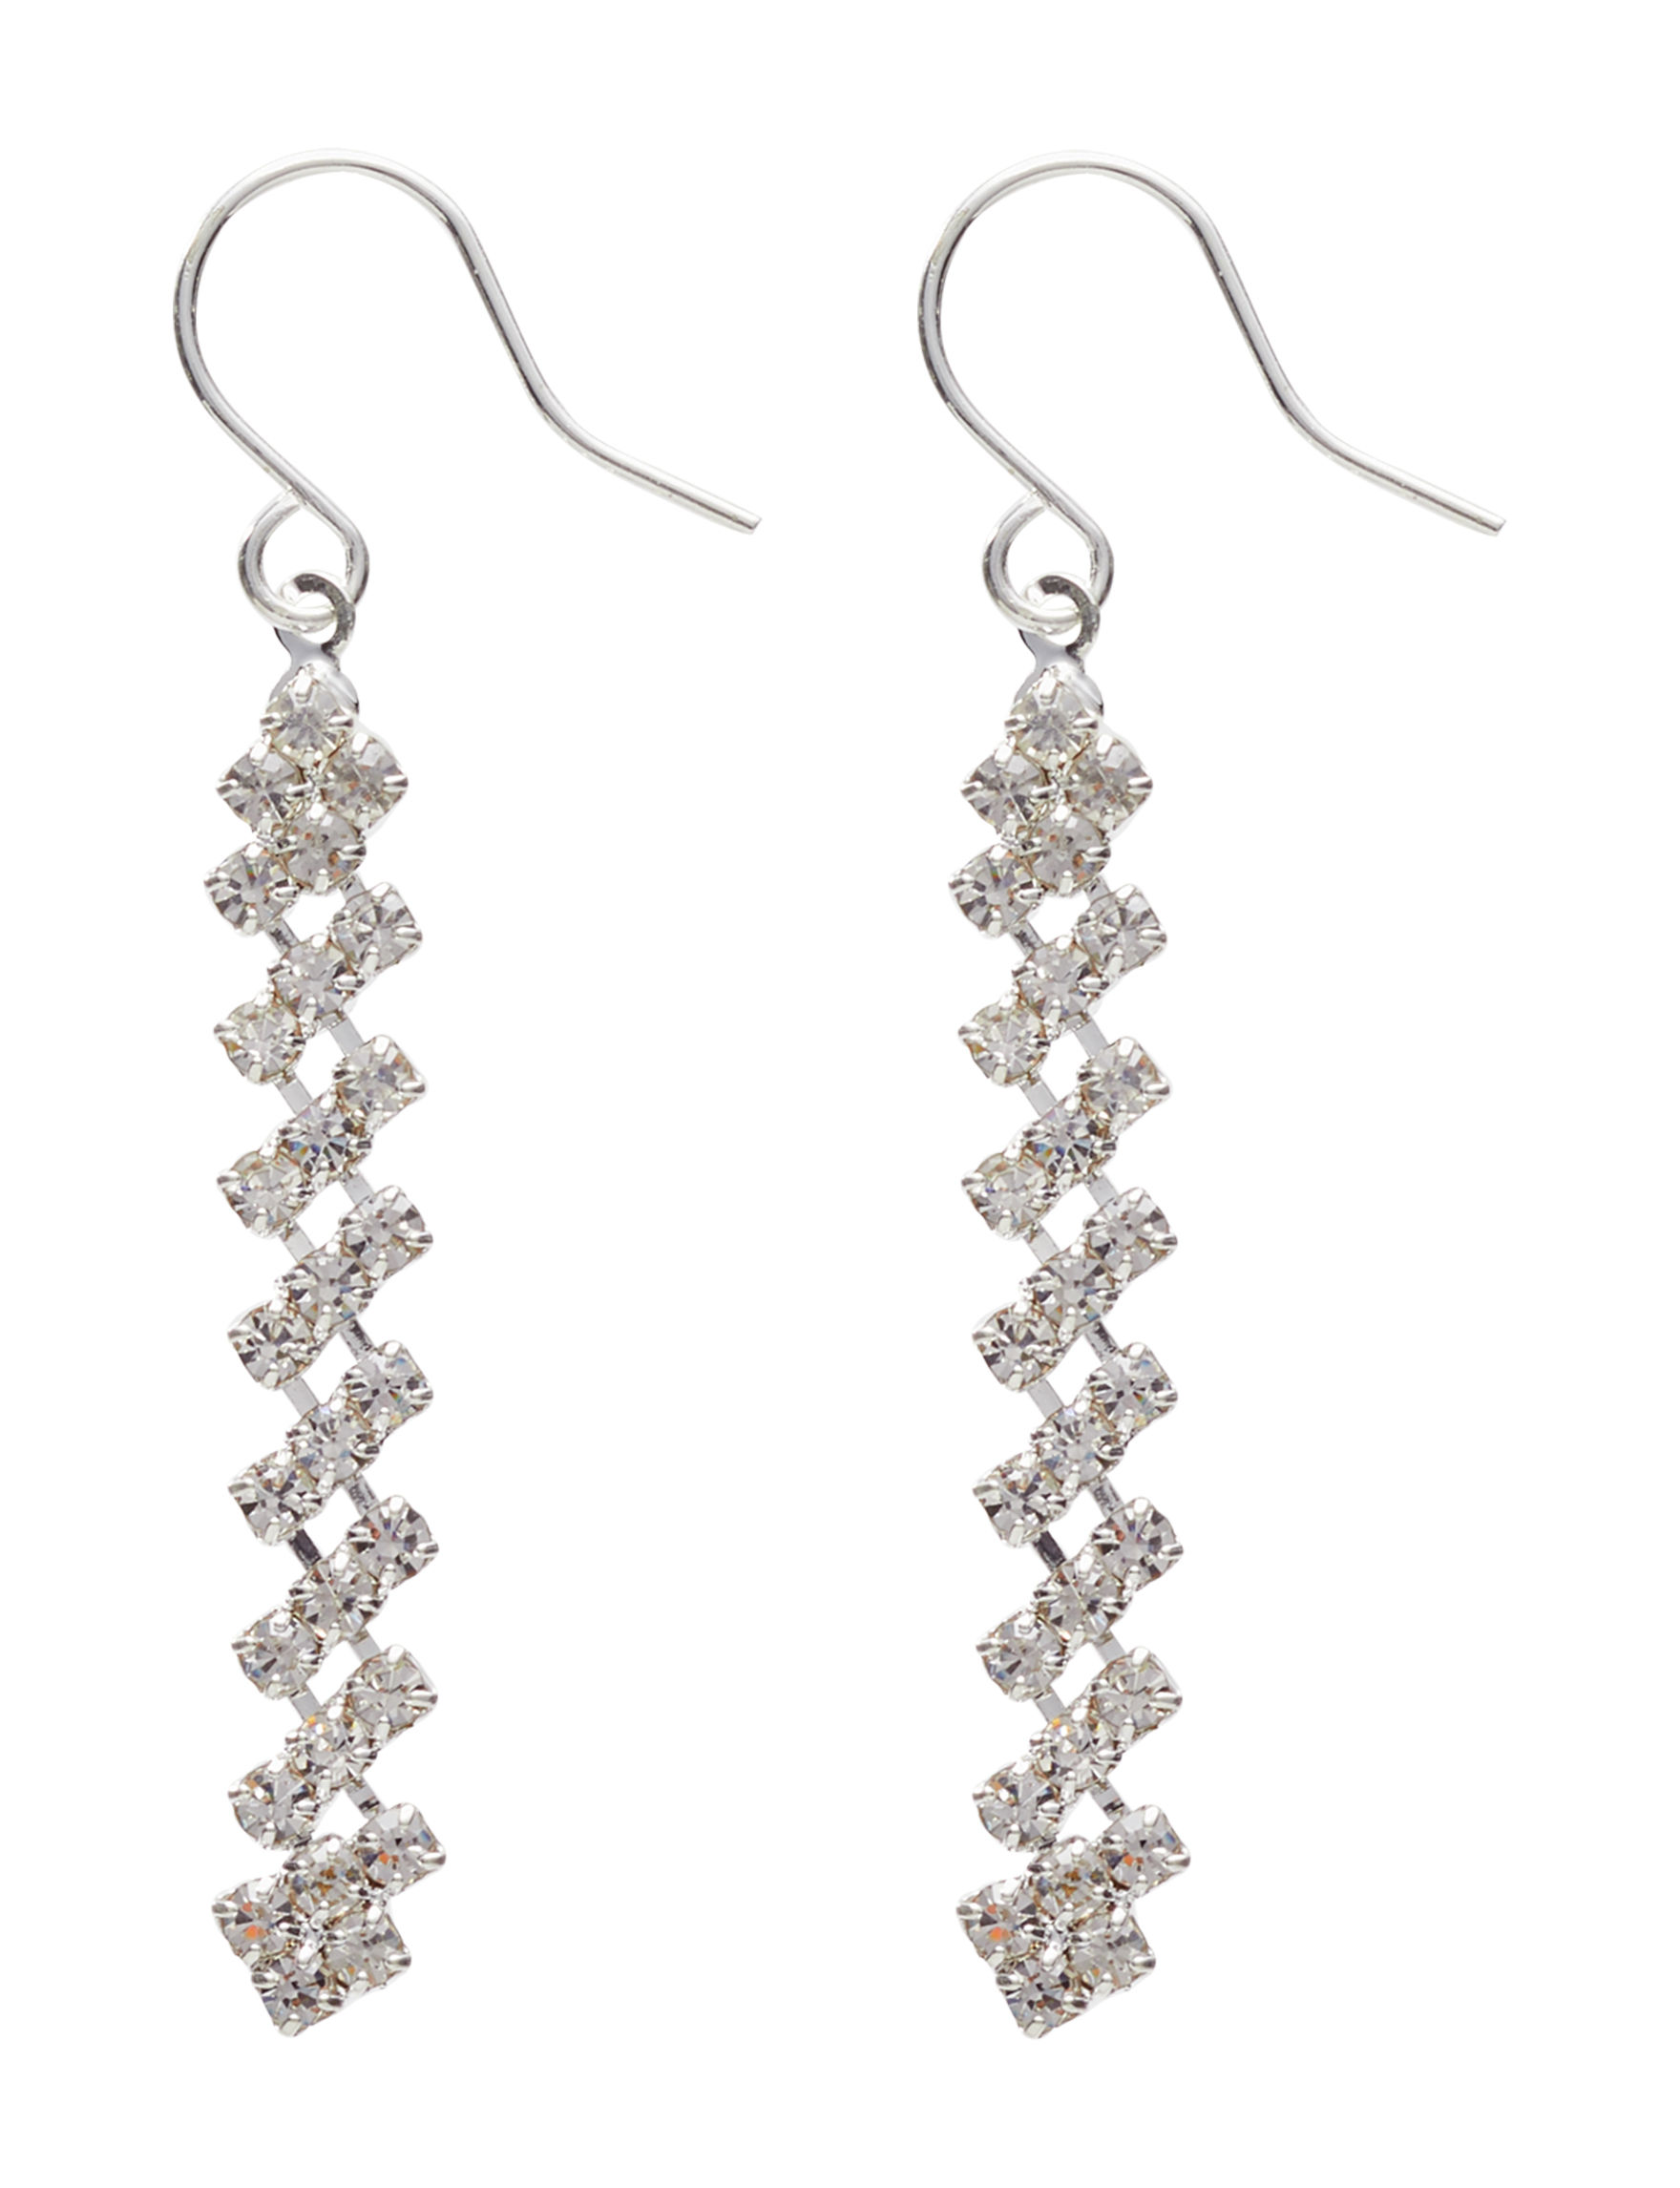 Via Roma Silver / Crystal Drops Earrings Fashion Jewelry